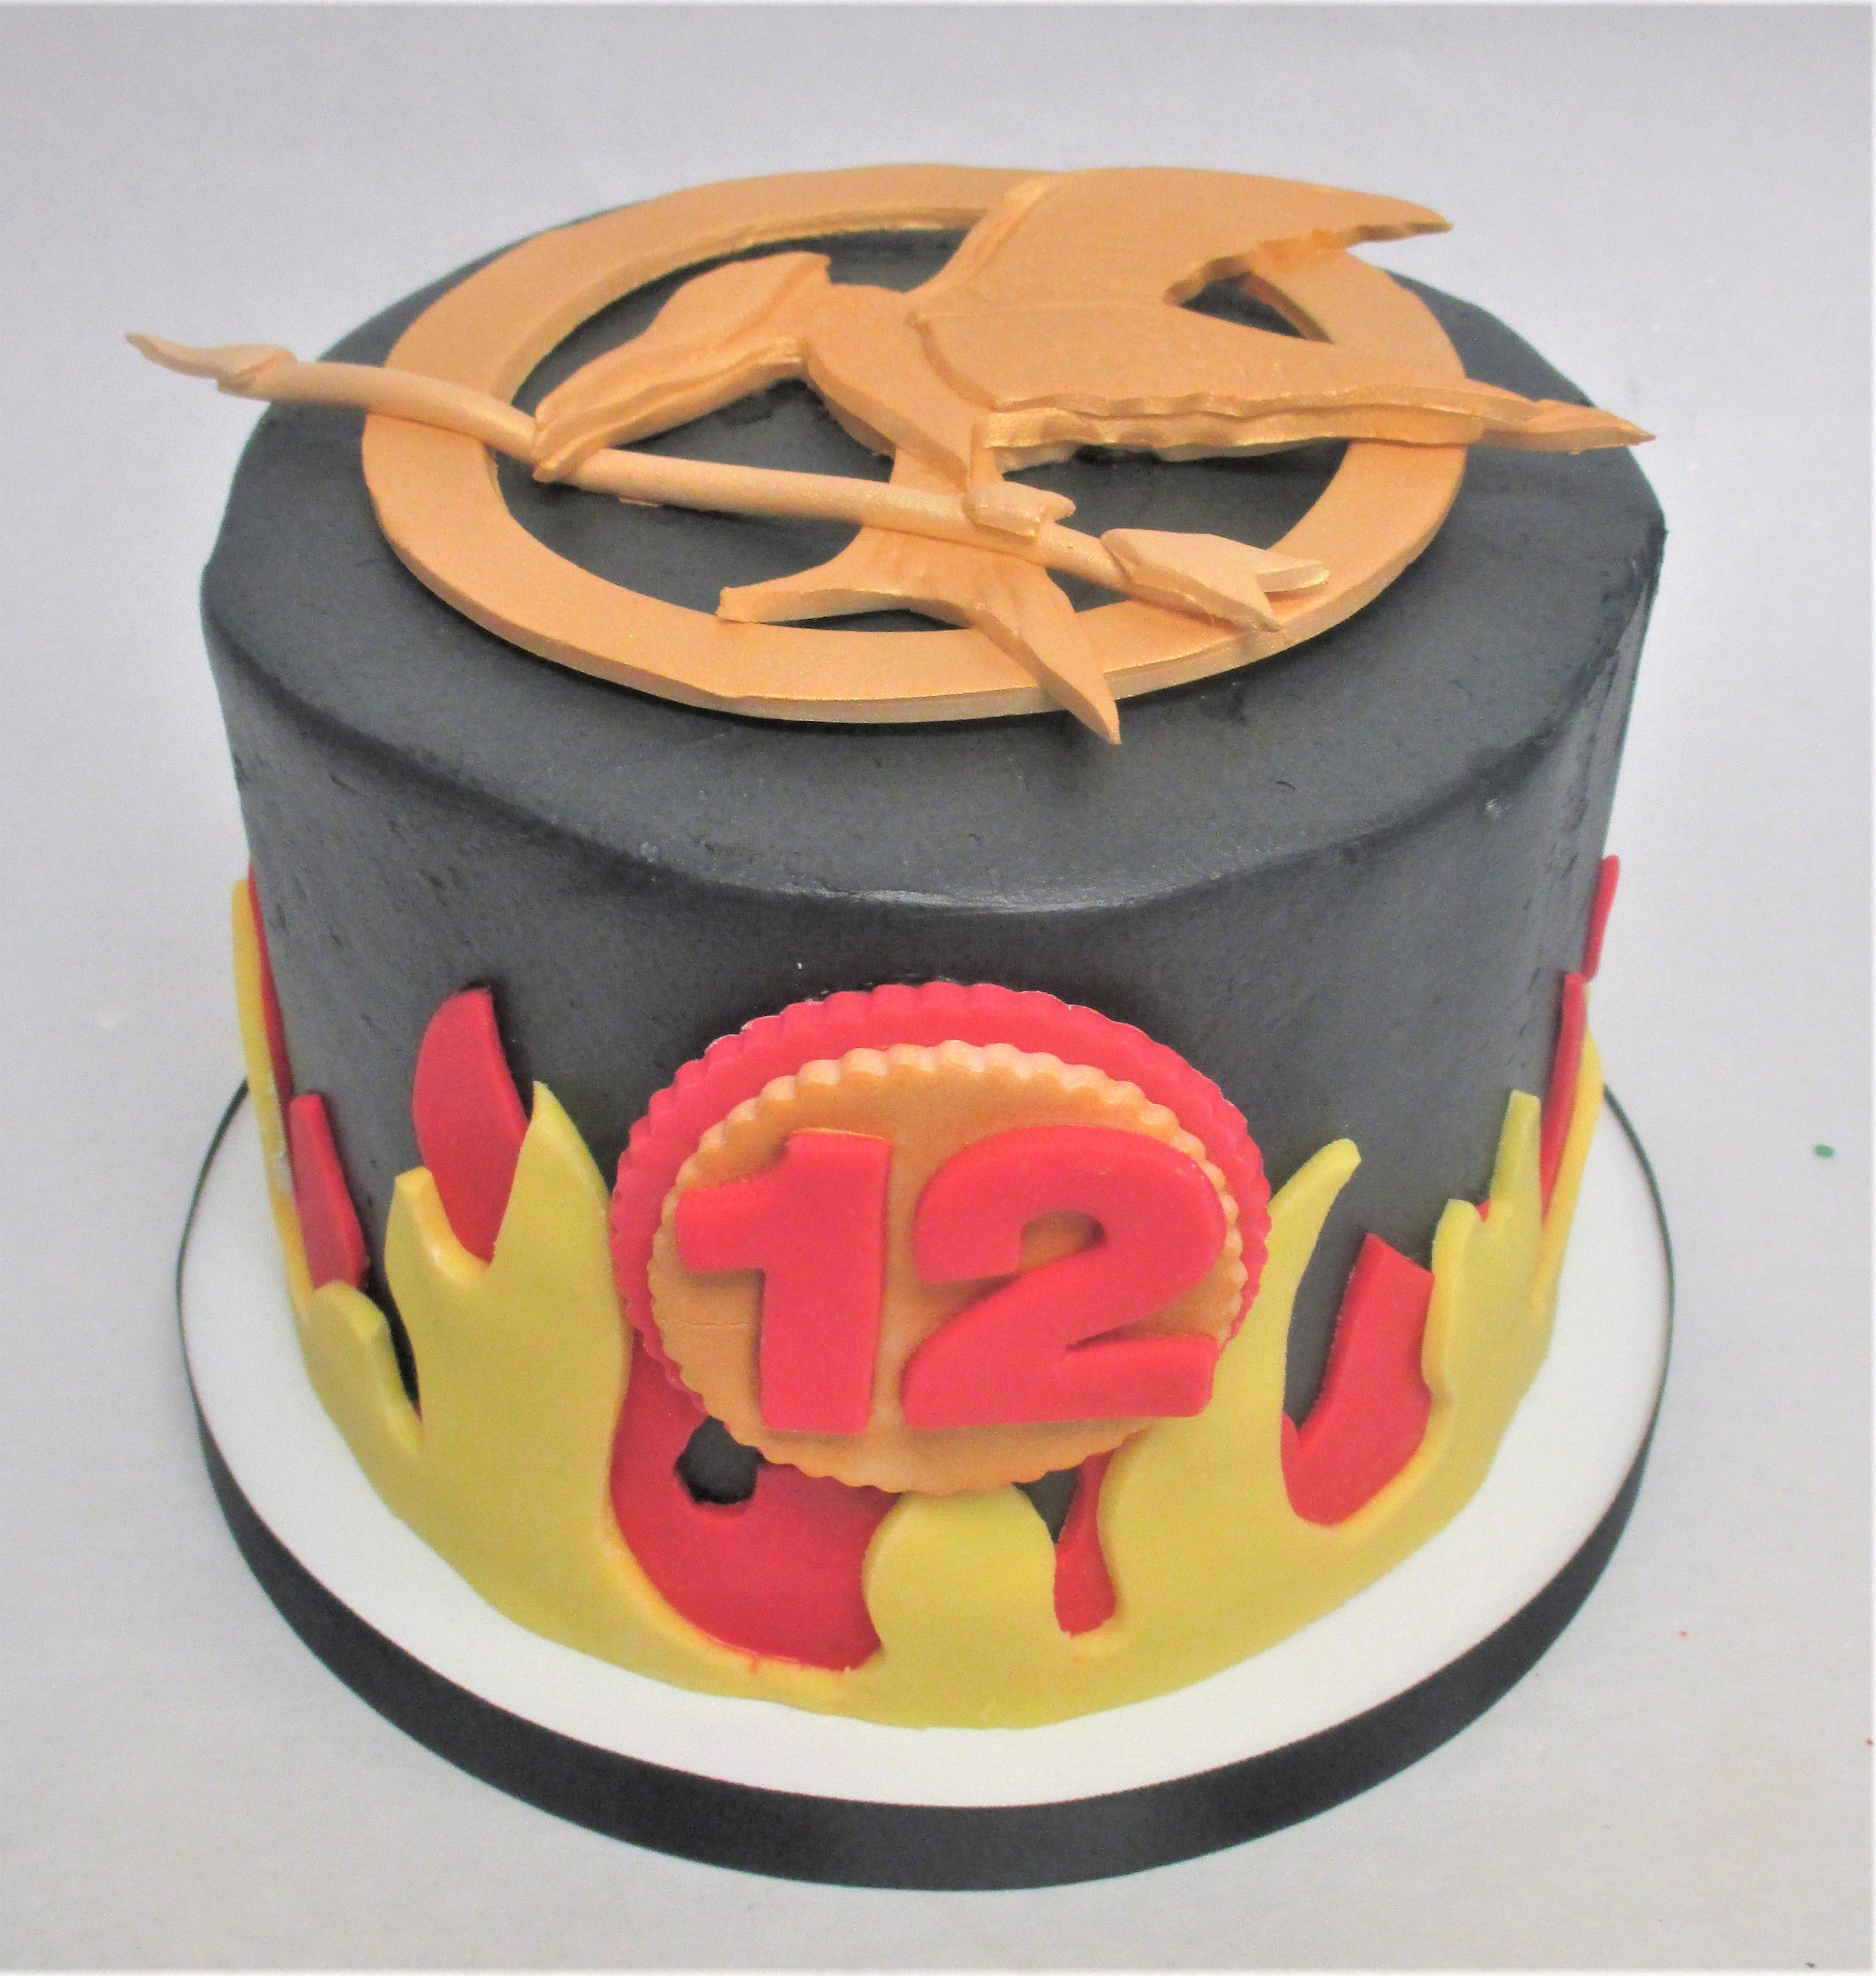 Hunger Games Mockingjay Inspired Birthday Cake by Flavor Cupcakery